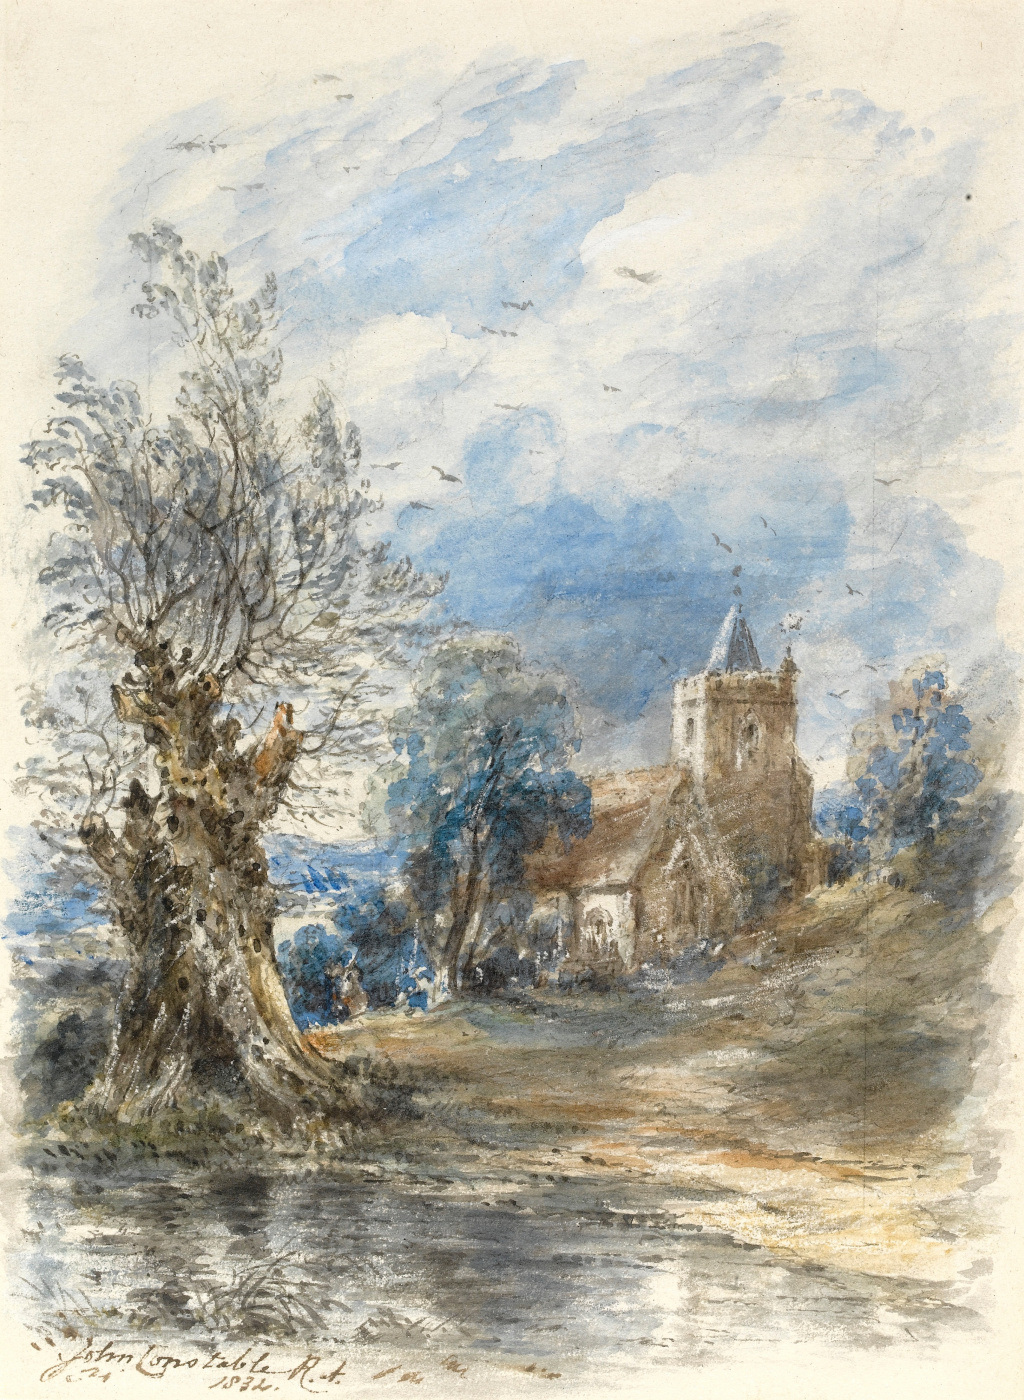 John Constable. Landscape with a tree and a Church on the banks of the river